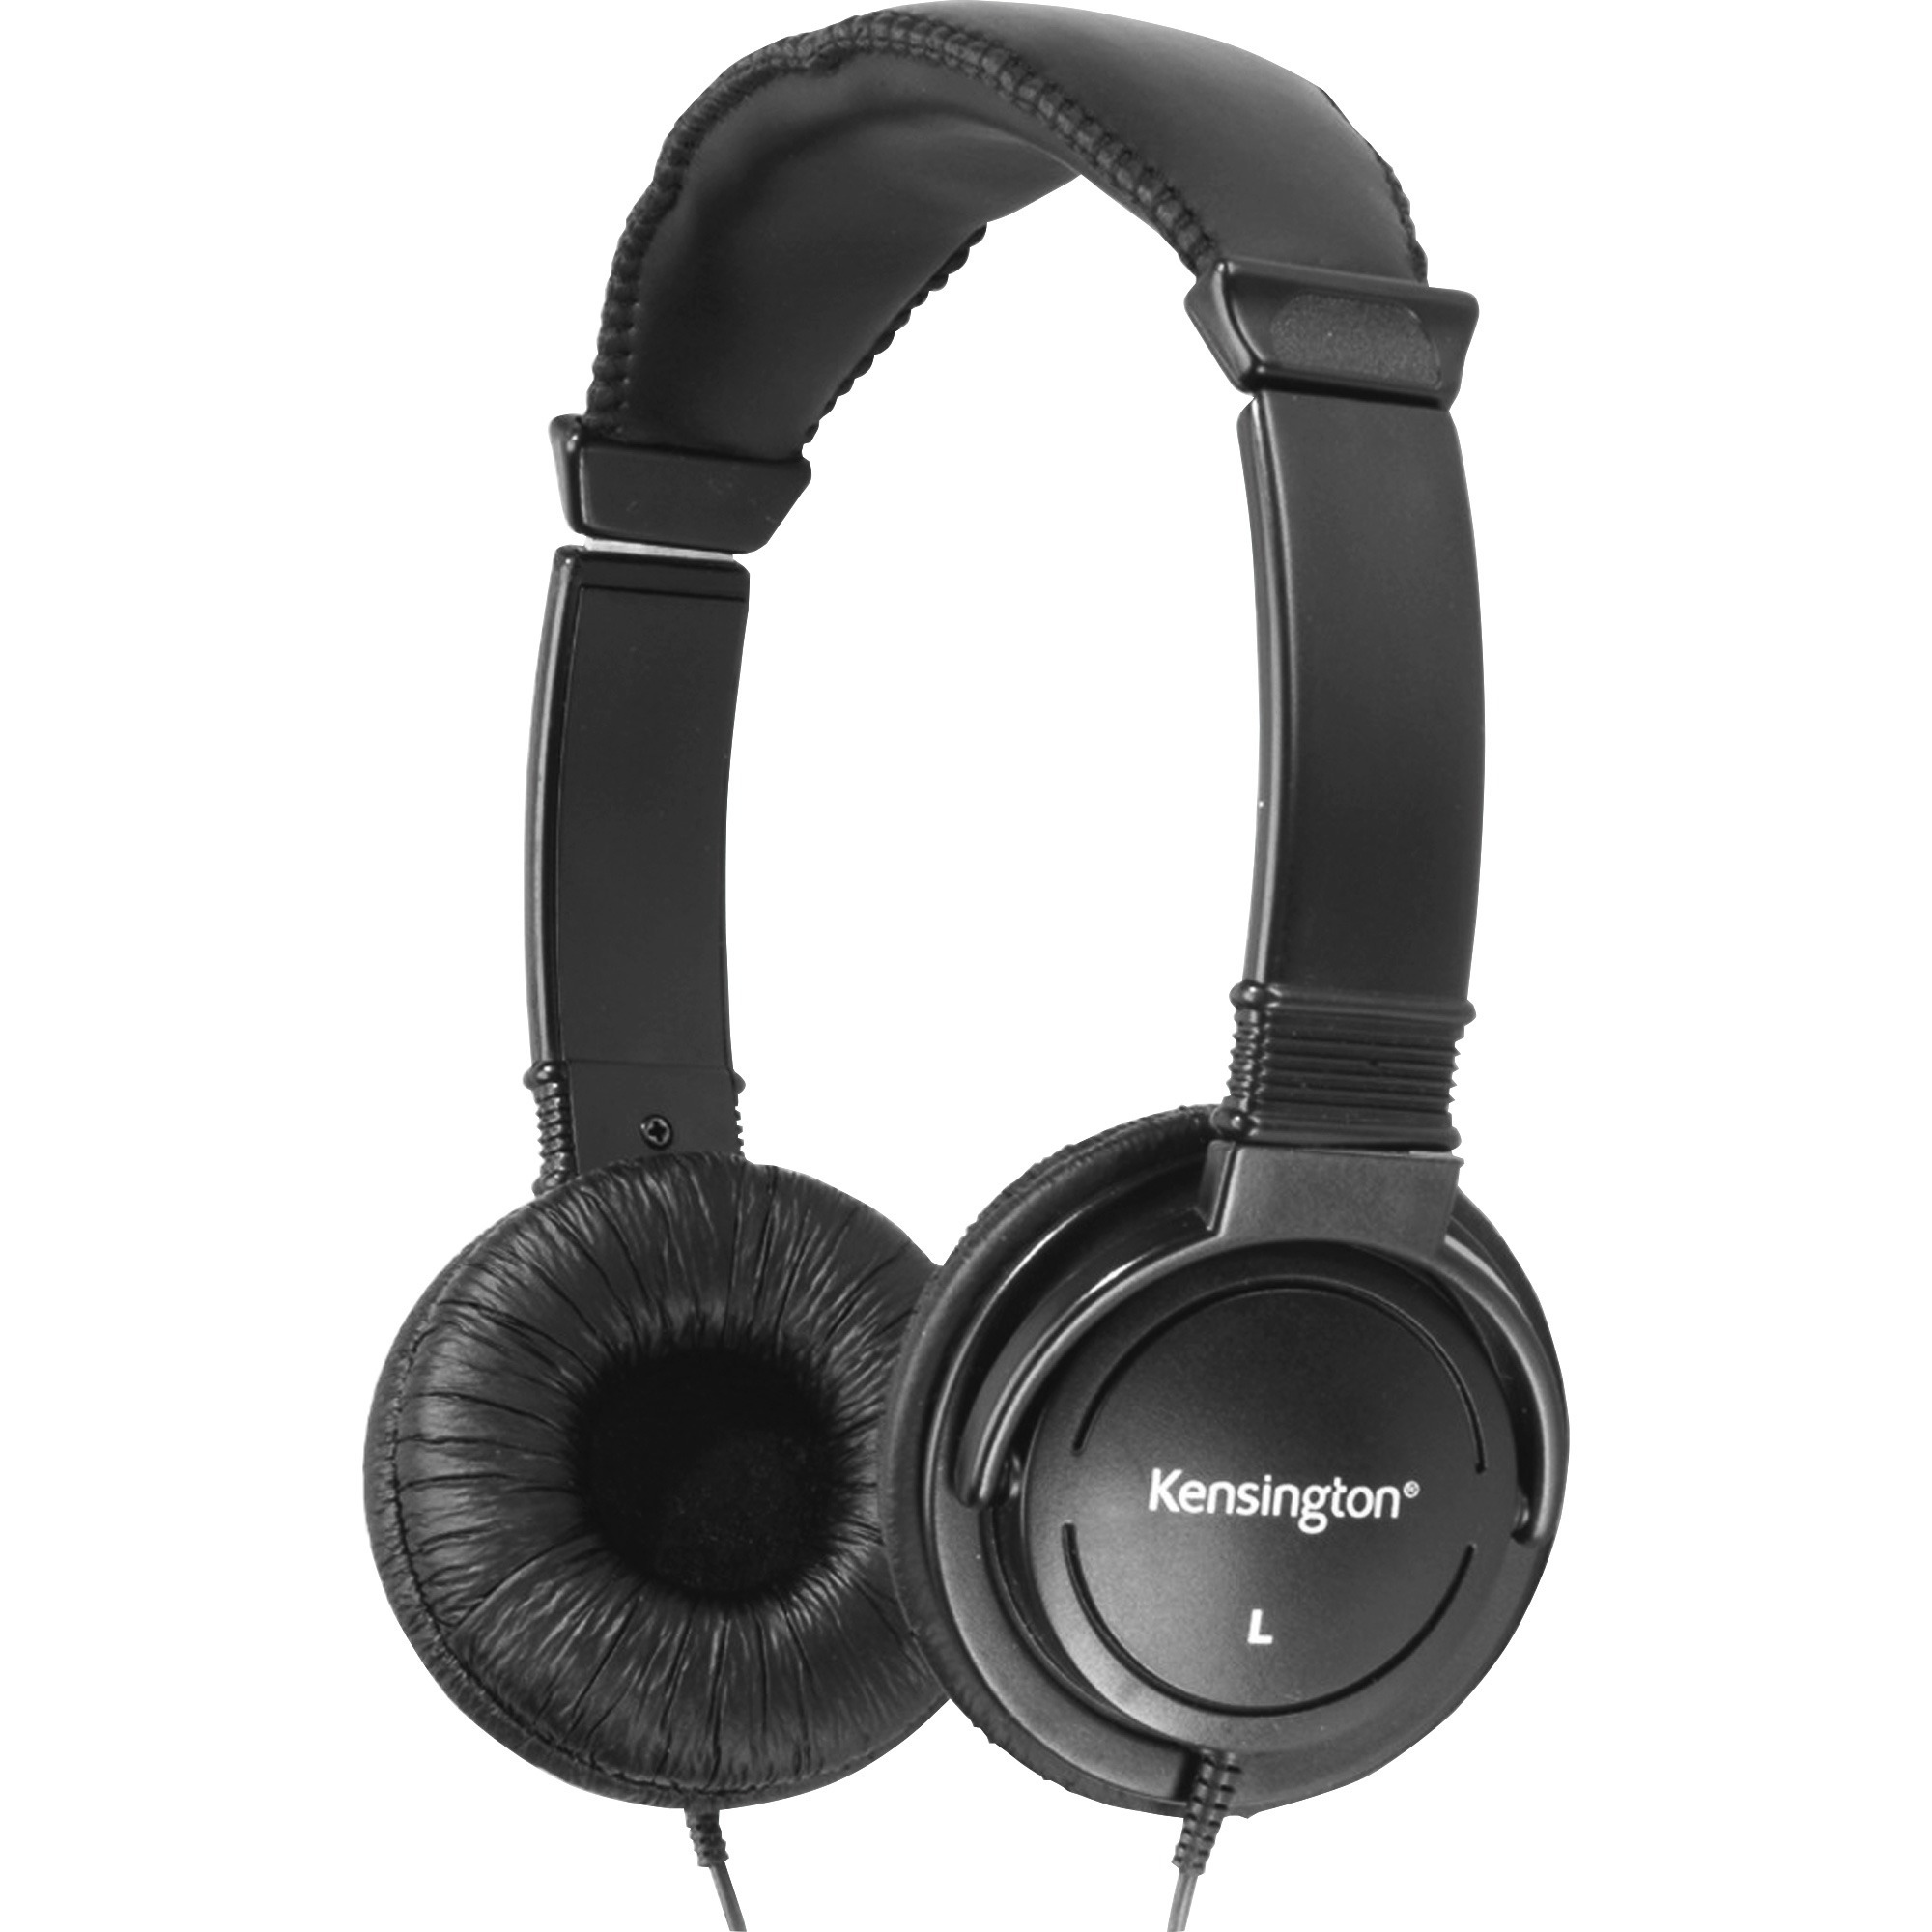 Kensington, KMW33137, Hi-Fi Headphones, 1, Black